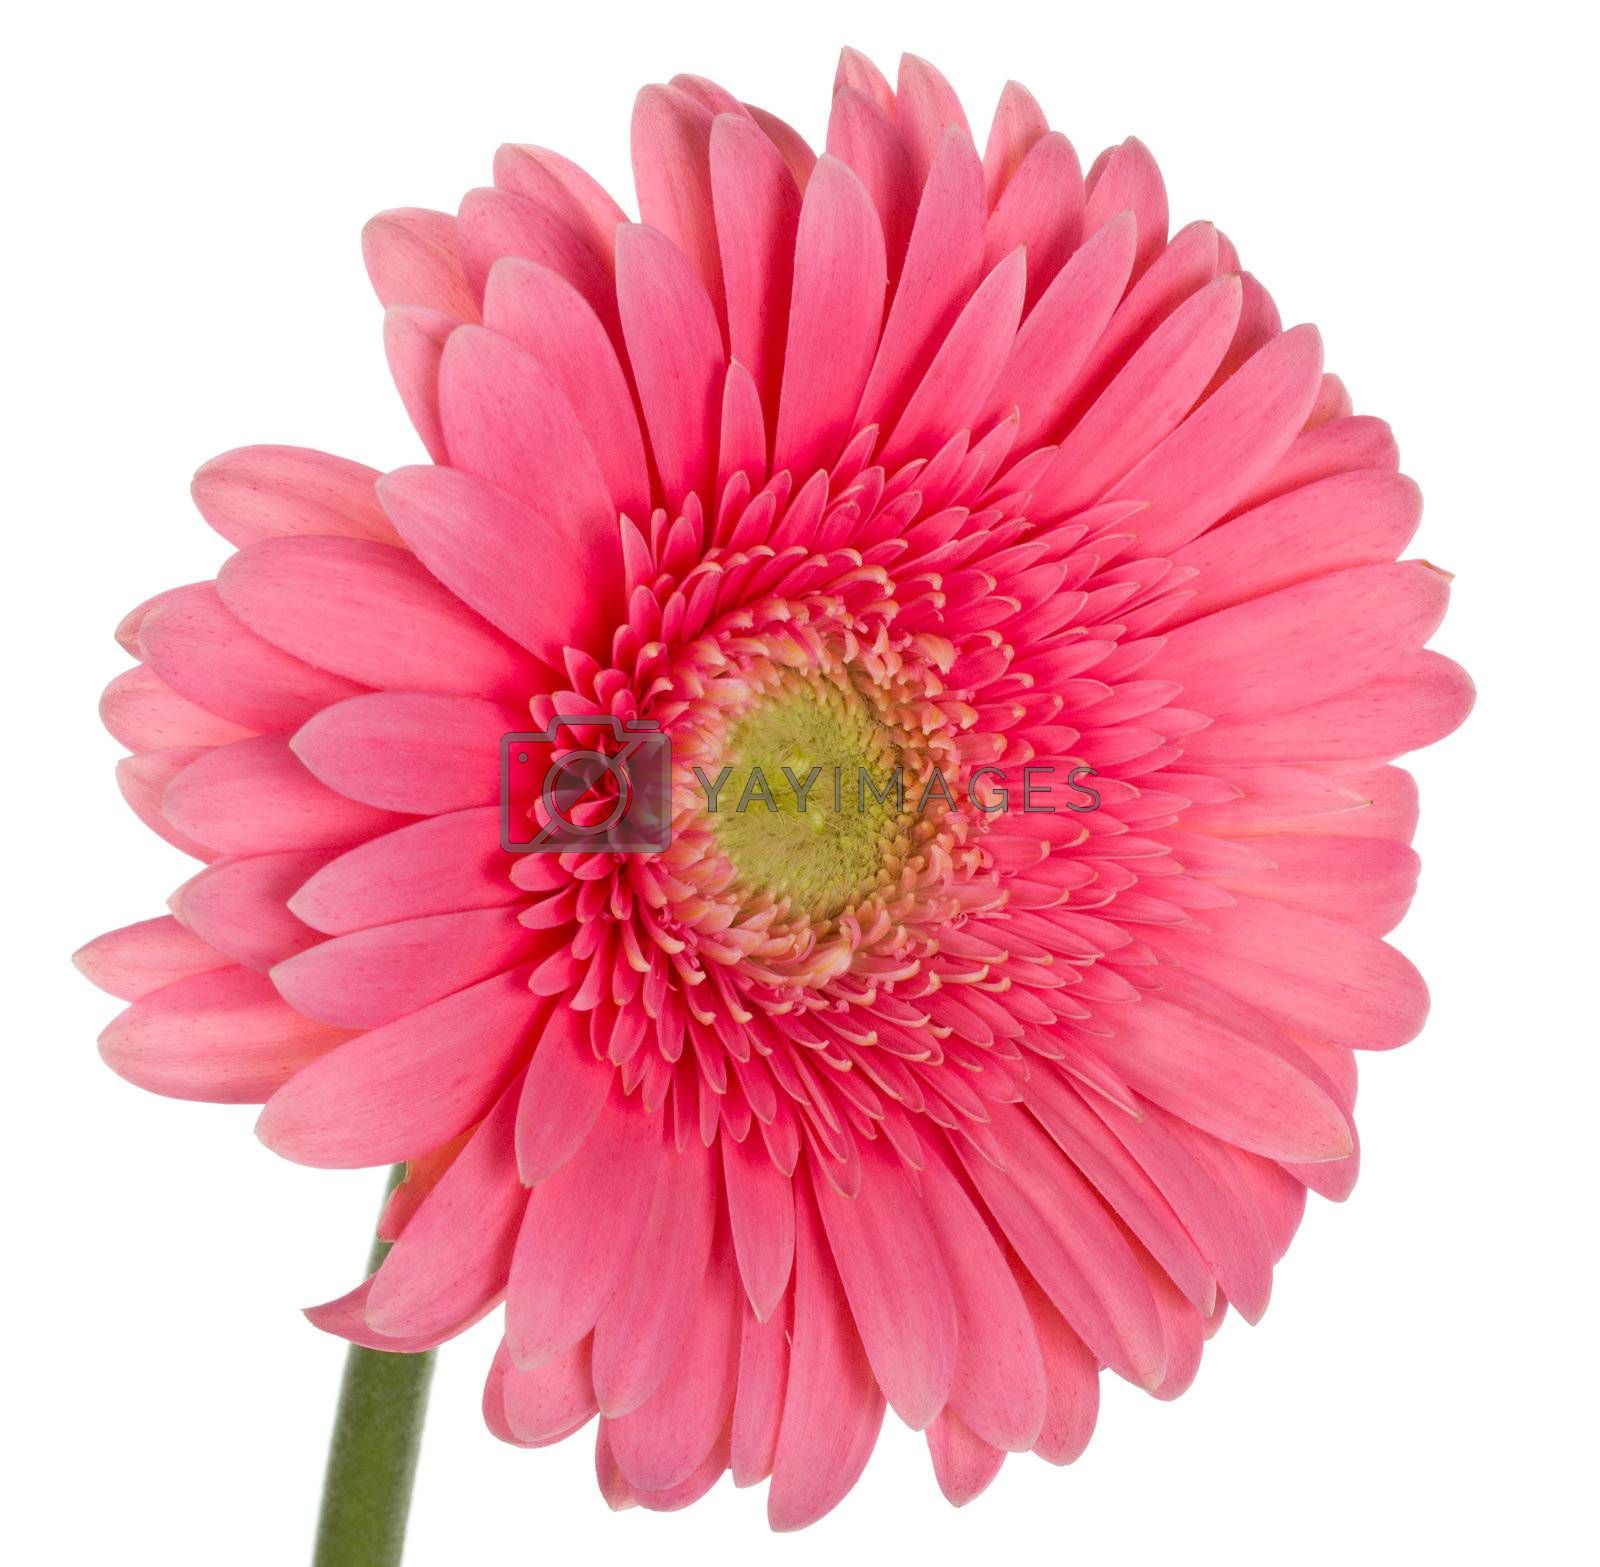 close-up pink gerbera flower, isolated on white